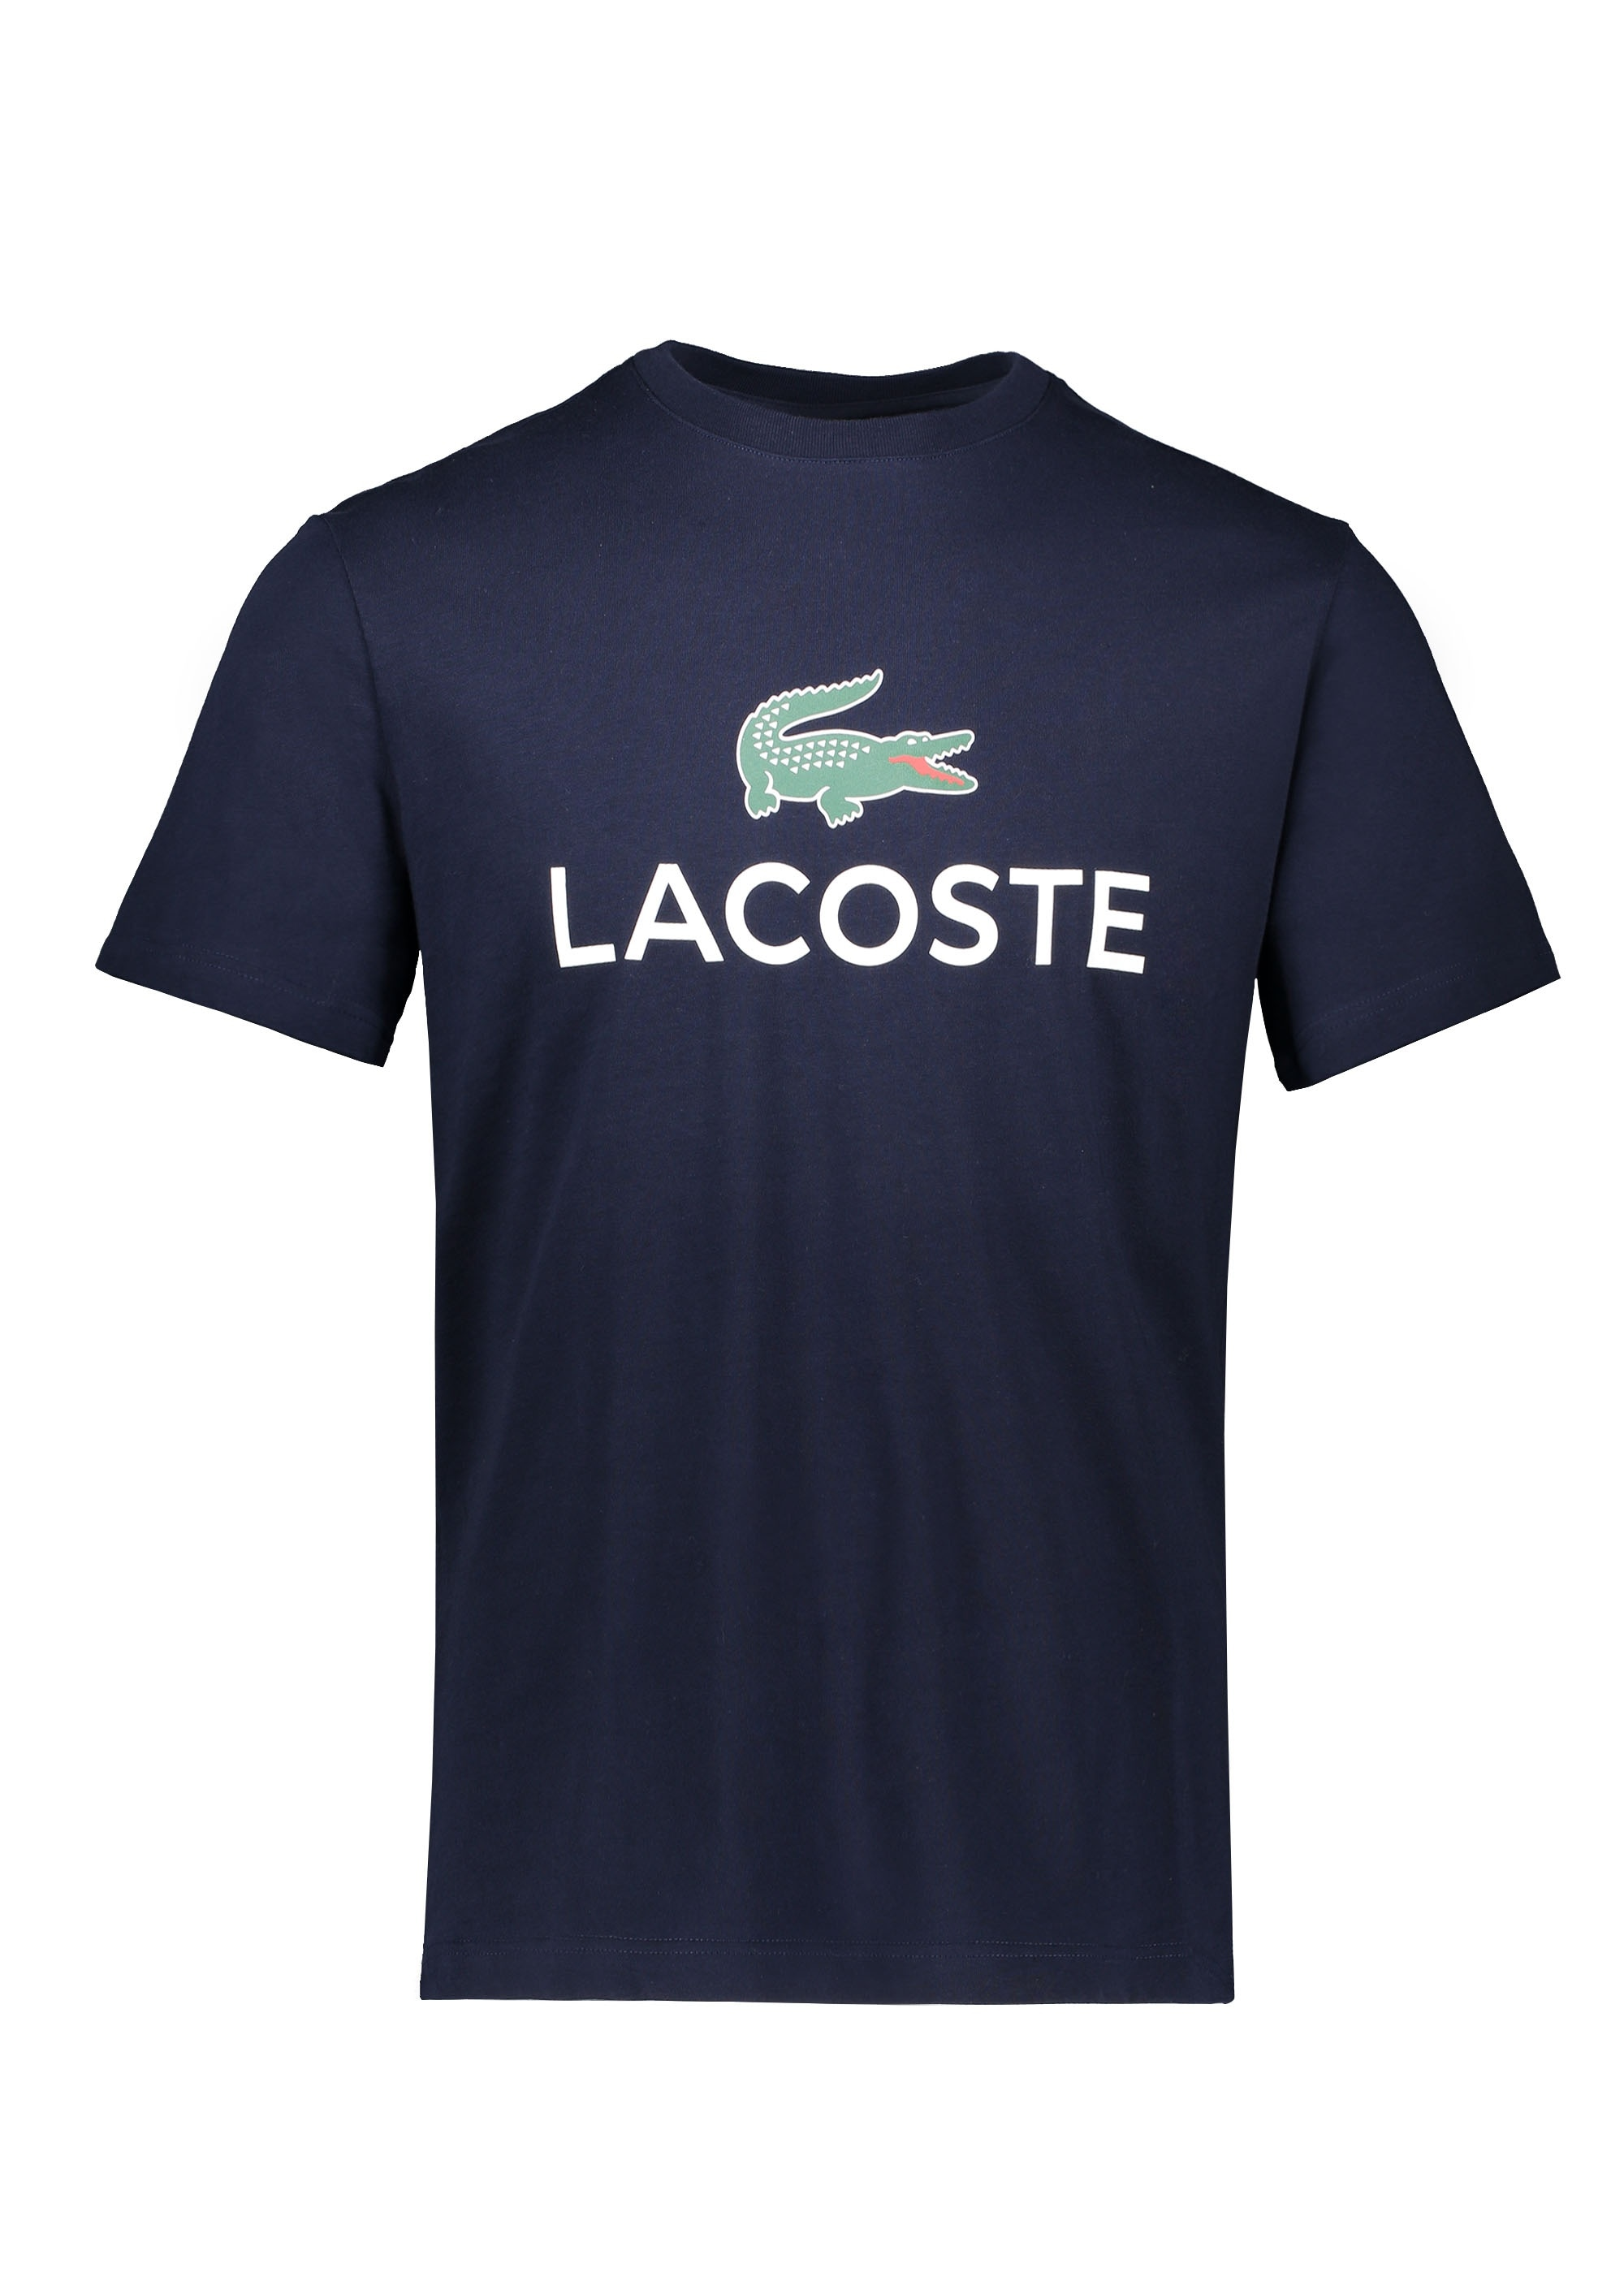 33418904 Lacoste Logo Tee - Navy Blue - T-shirts from Triads UK